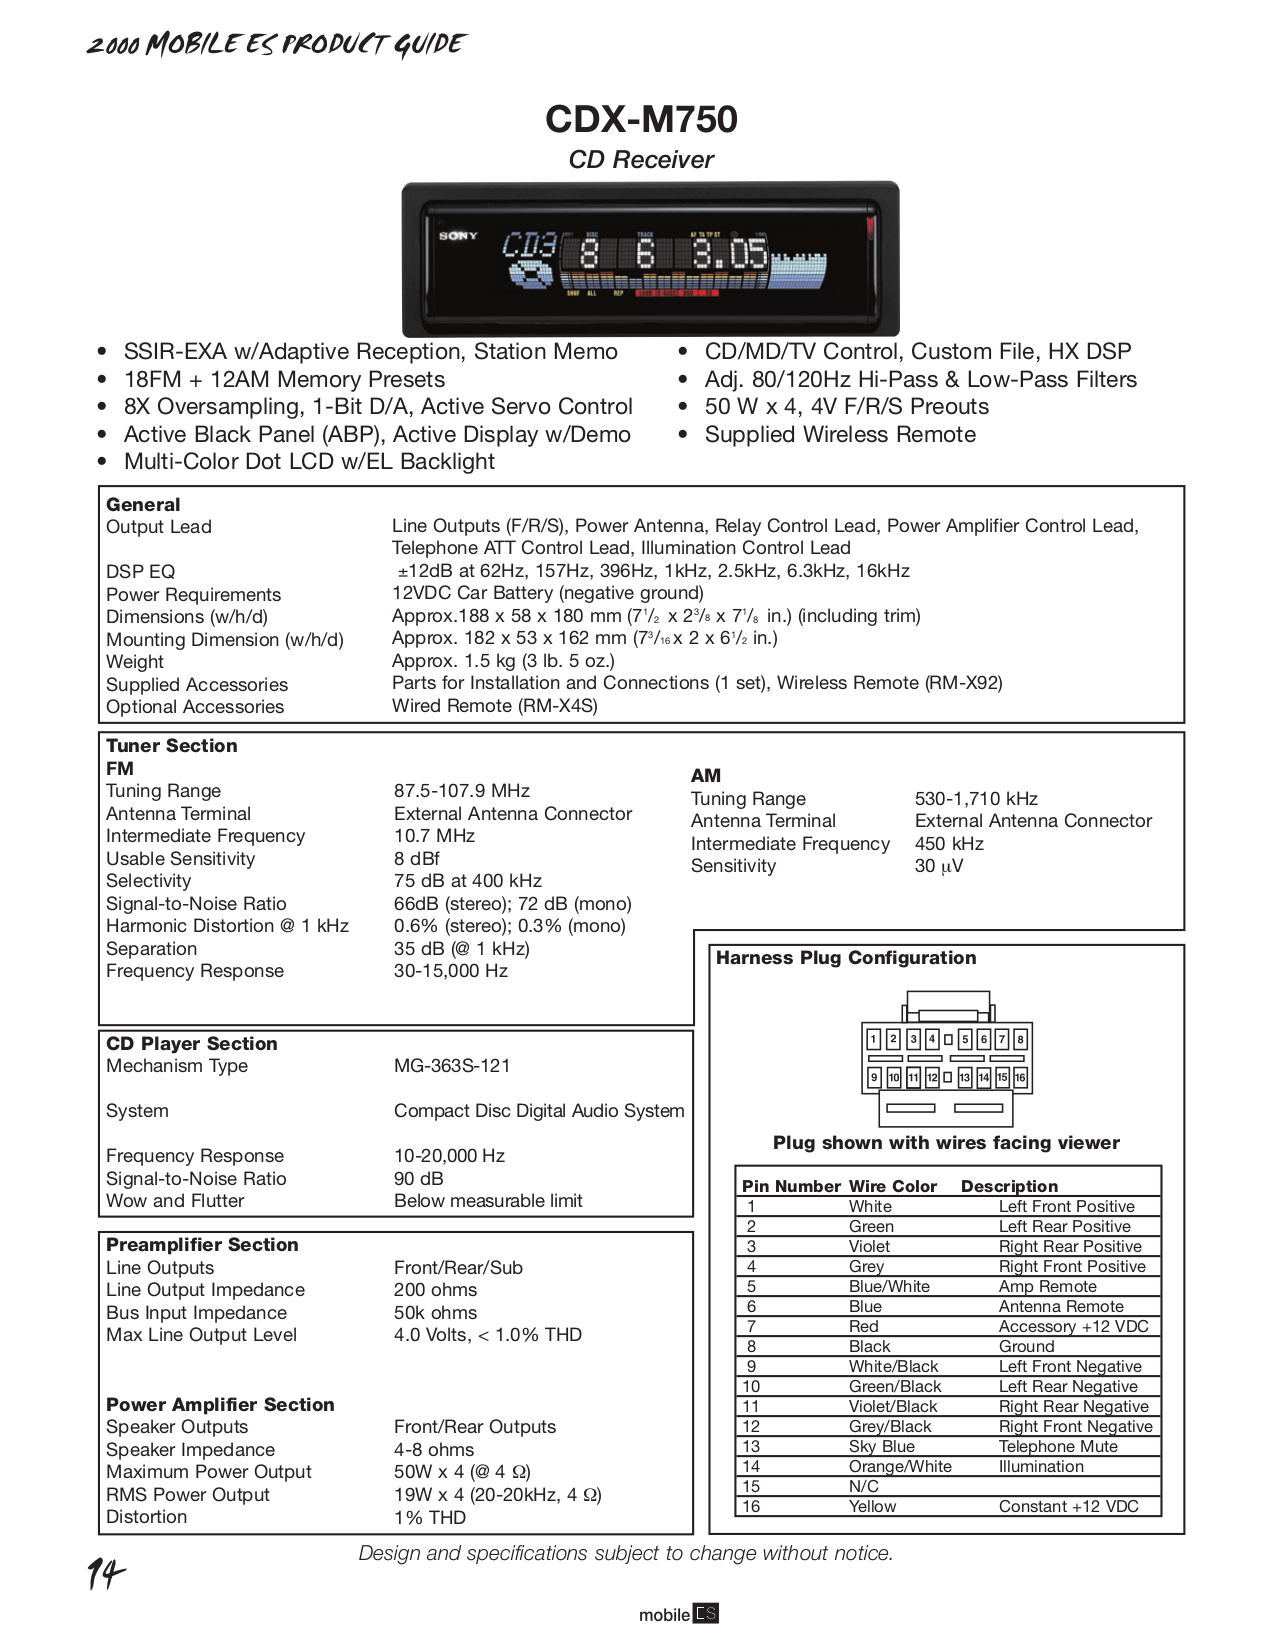 Download free pdf for Sony CDX-M750 Car Receiver manual